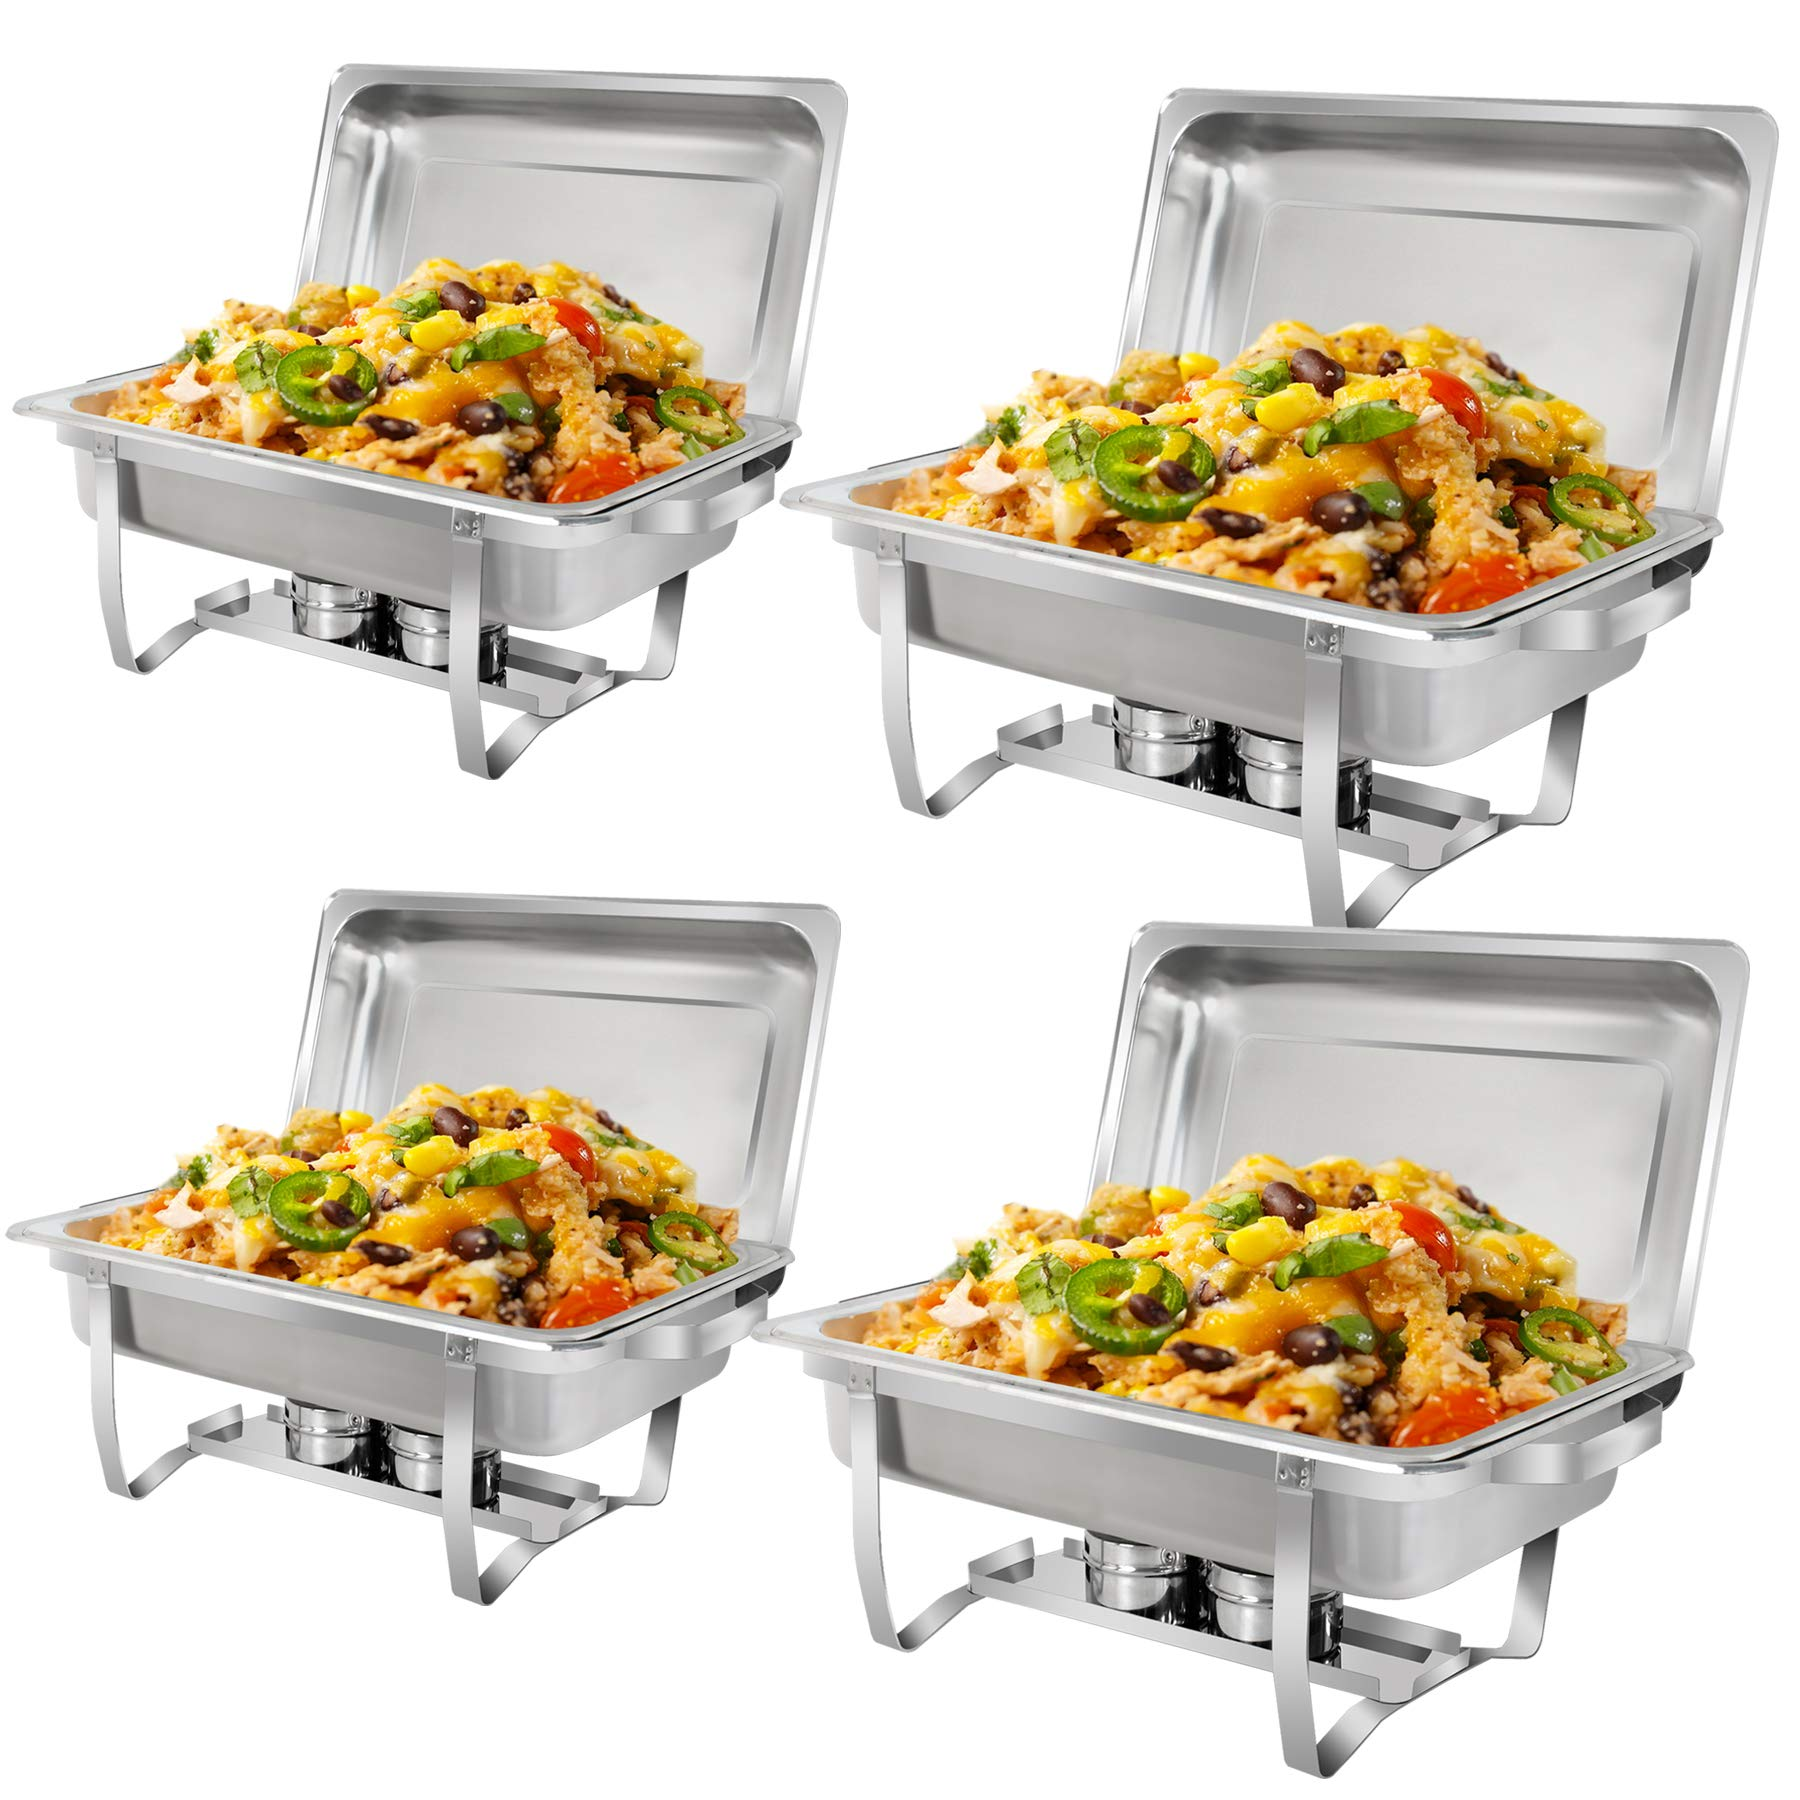 SUPER DEAL 8 Qt Stainless Steel 4 Pack Full Size Chafer Dish w/Water Pan, Food Pan, Fuel Holder and Lid For Buffet/Weddings/Parties/Banquets/Catering Events (4) by SUPER DEAL